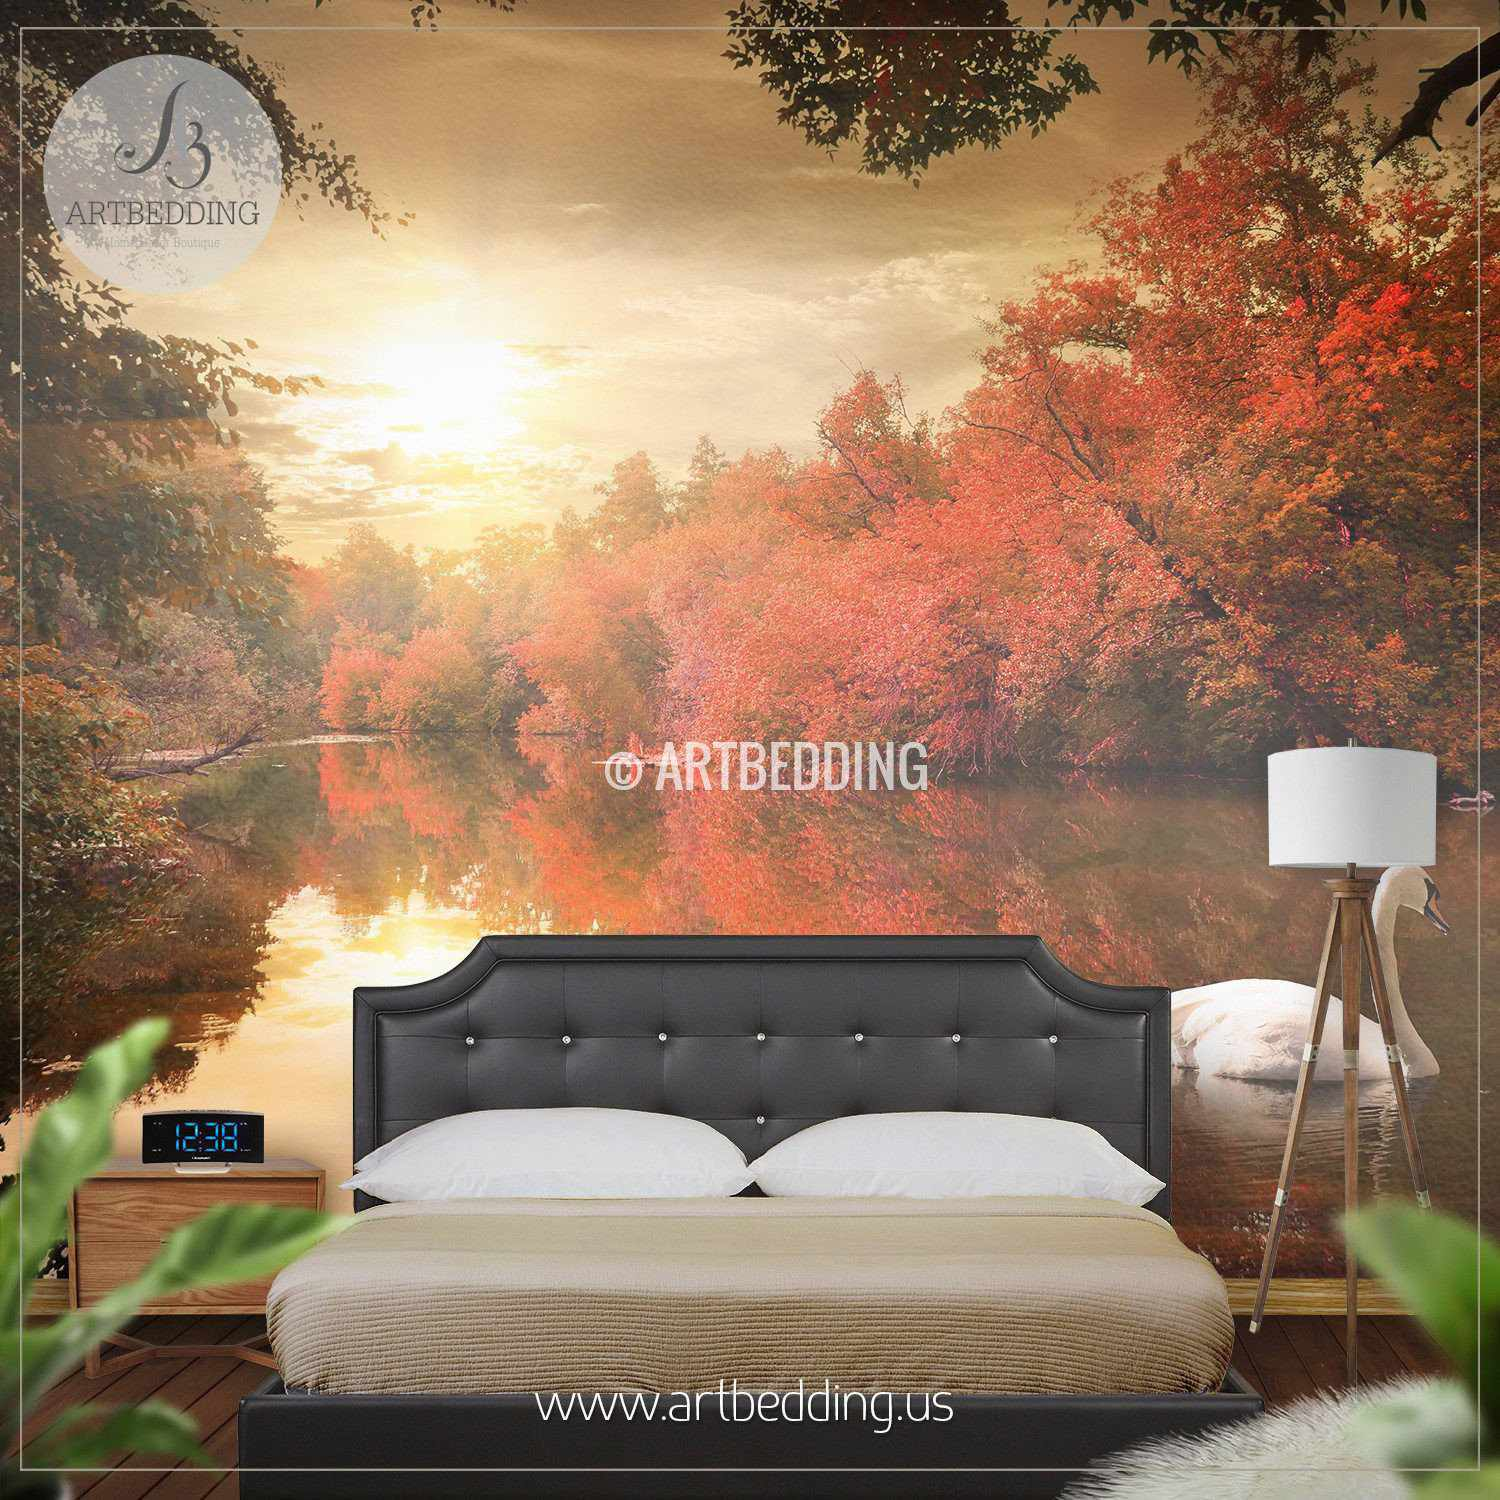 Swan autumn lake self adhesive photo mural artbedding for Autumn wall mural